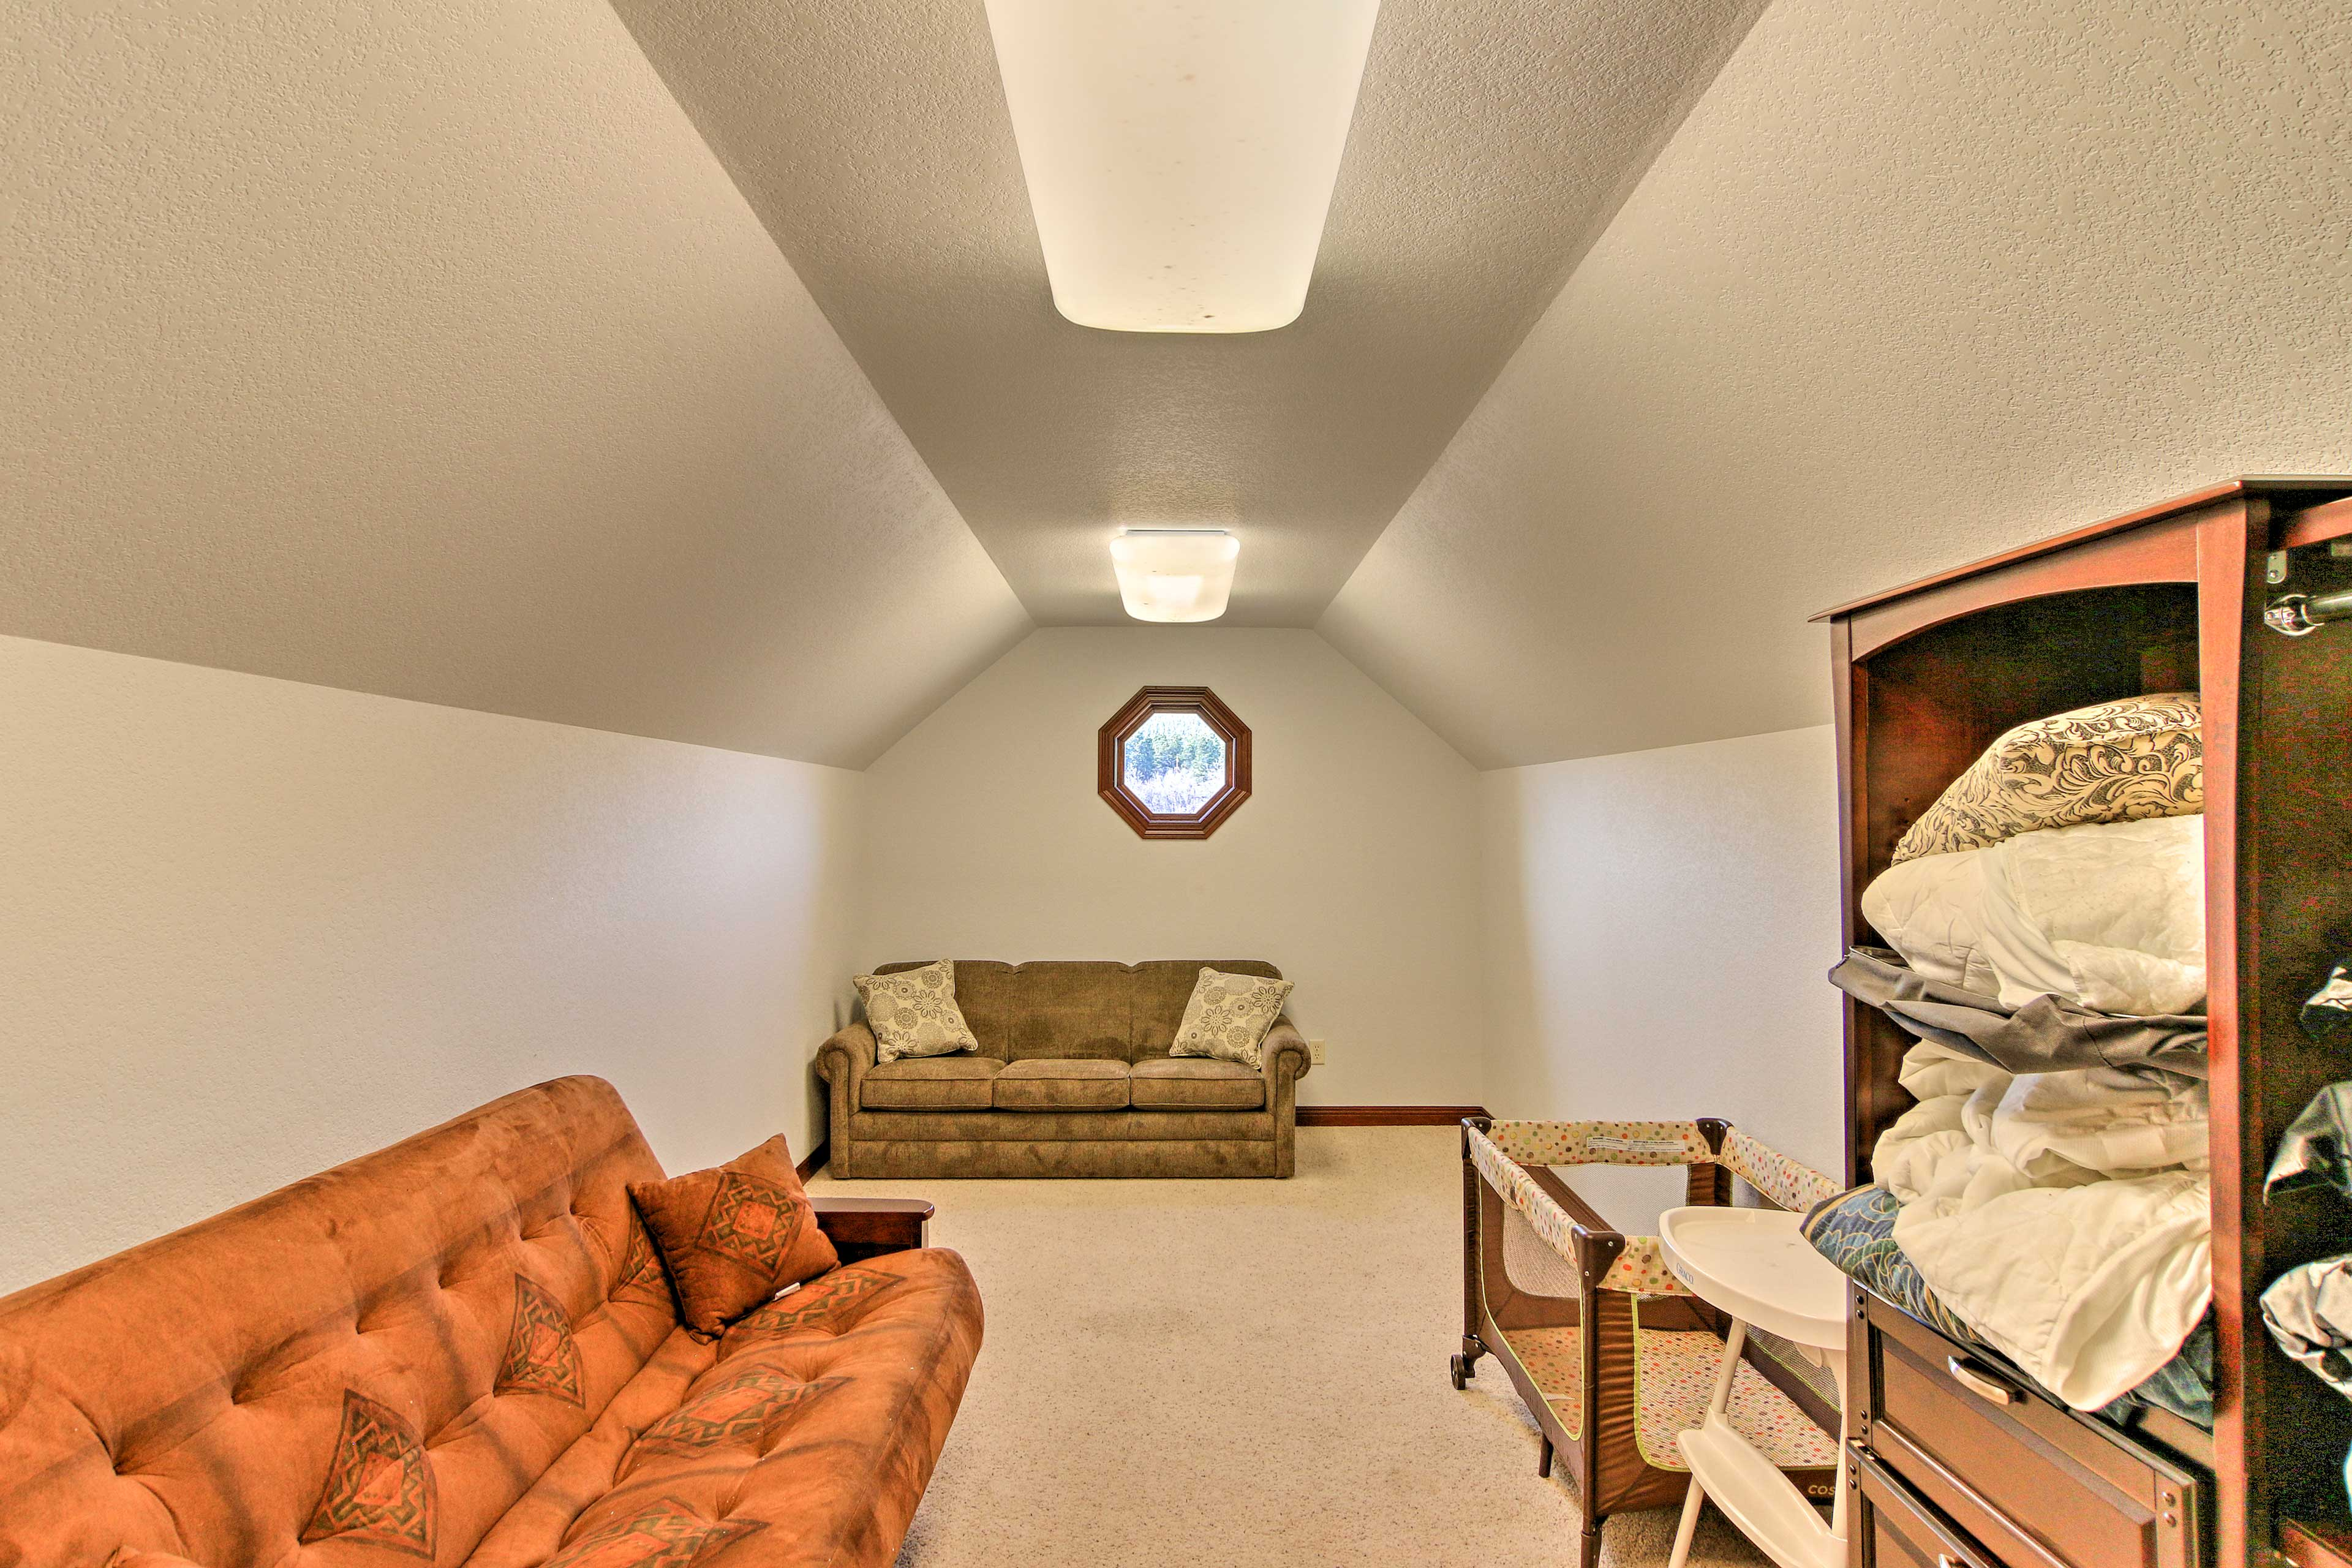 The loft provides additional sleeping space.